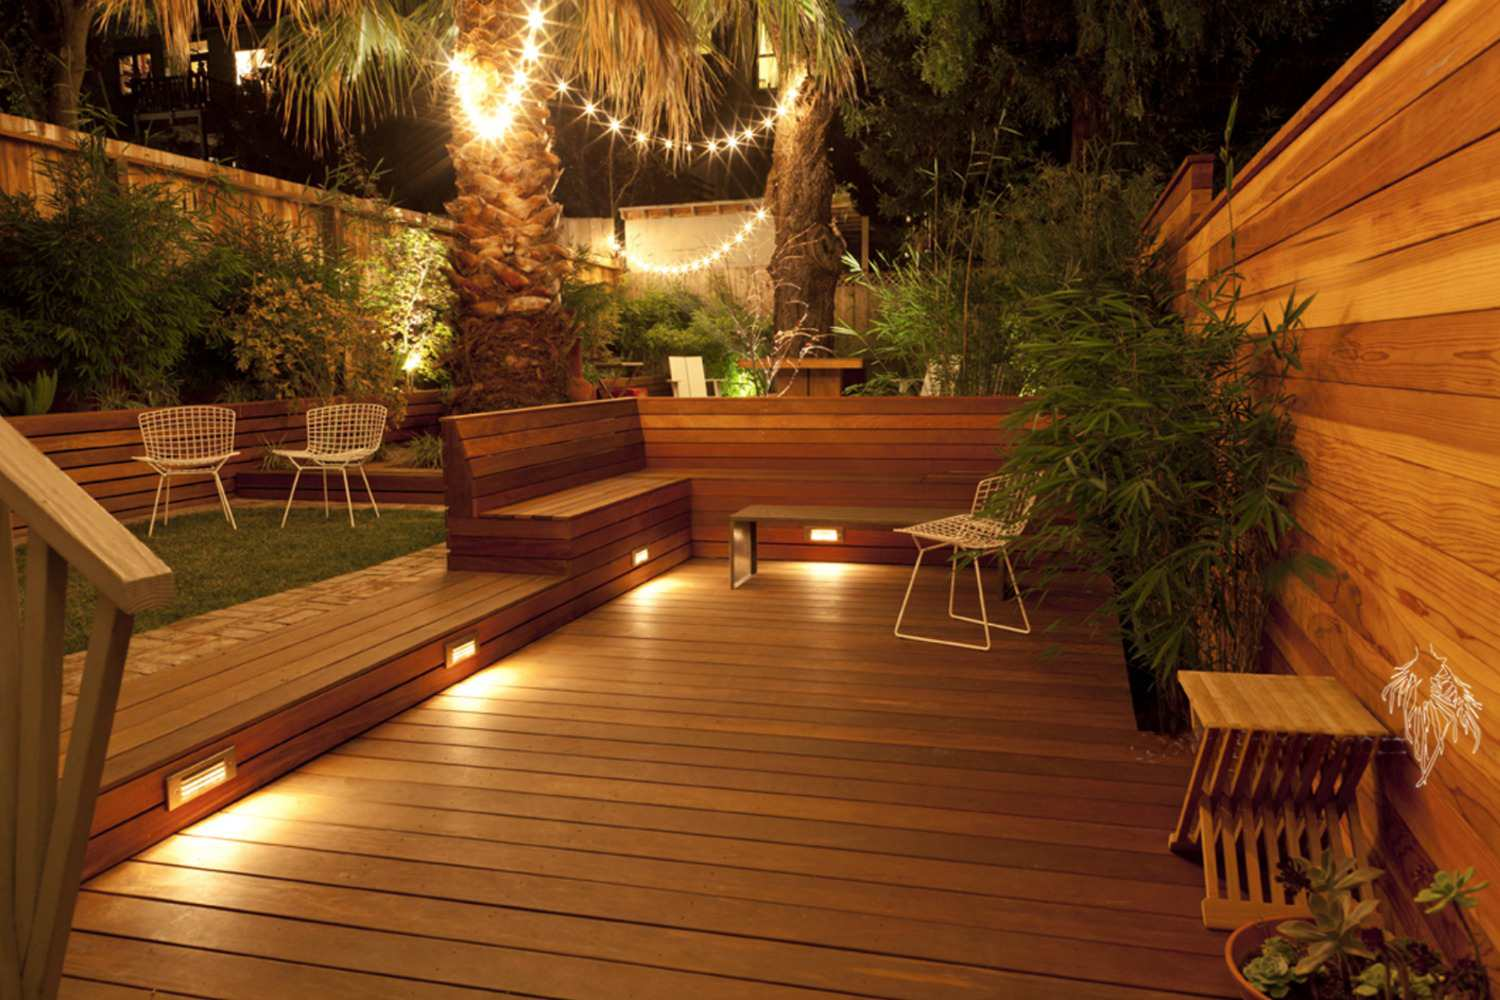 15 Deck Lighting Ideas For Every Season